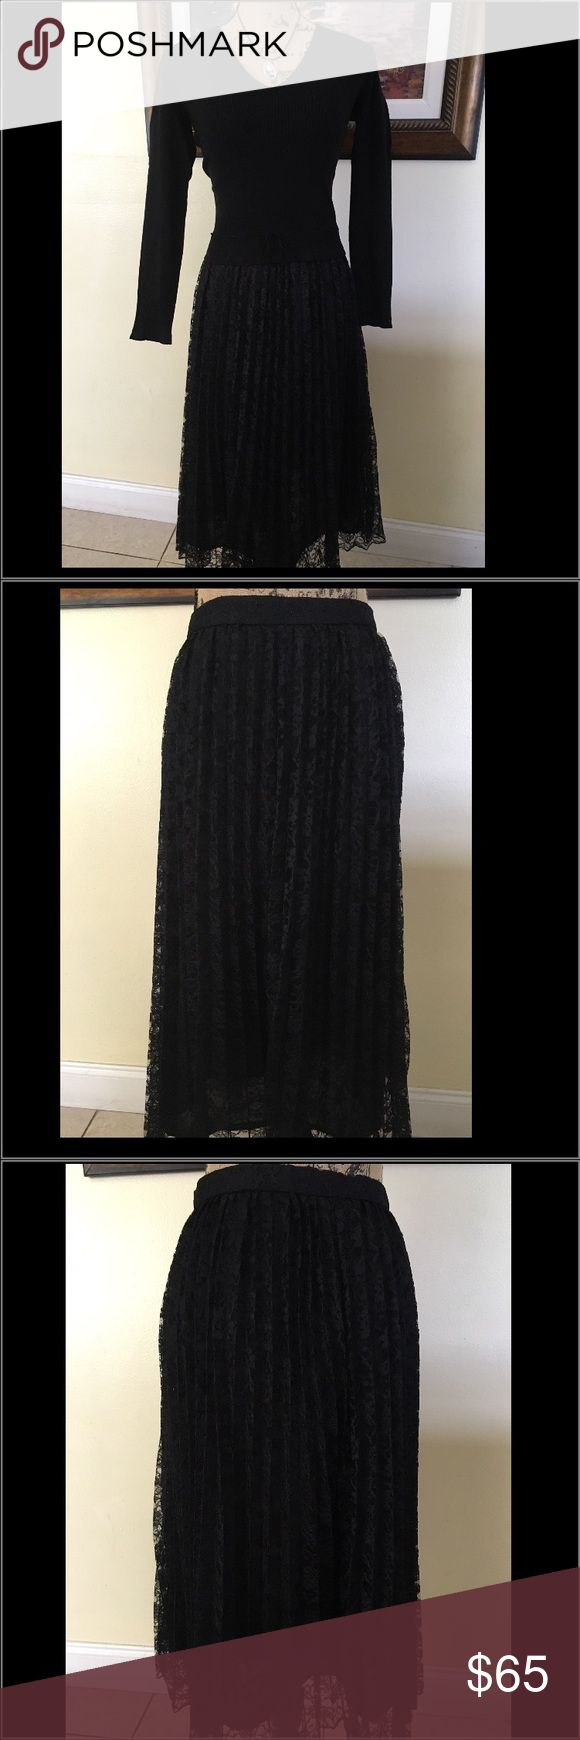 """️ SZ 16 ASOS Curve Black Lace Skirt ️ SZ 16 ASOS Curve Black Lace Skirt.  Like new.  Perfect party skirt for that """"Sex in the City"""" look.  Also can be worn to a special evening occasion. ASOS Skirts A-Line or Full"""